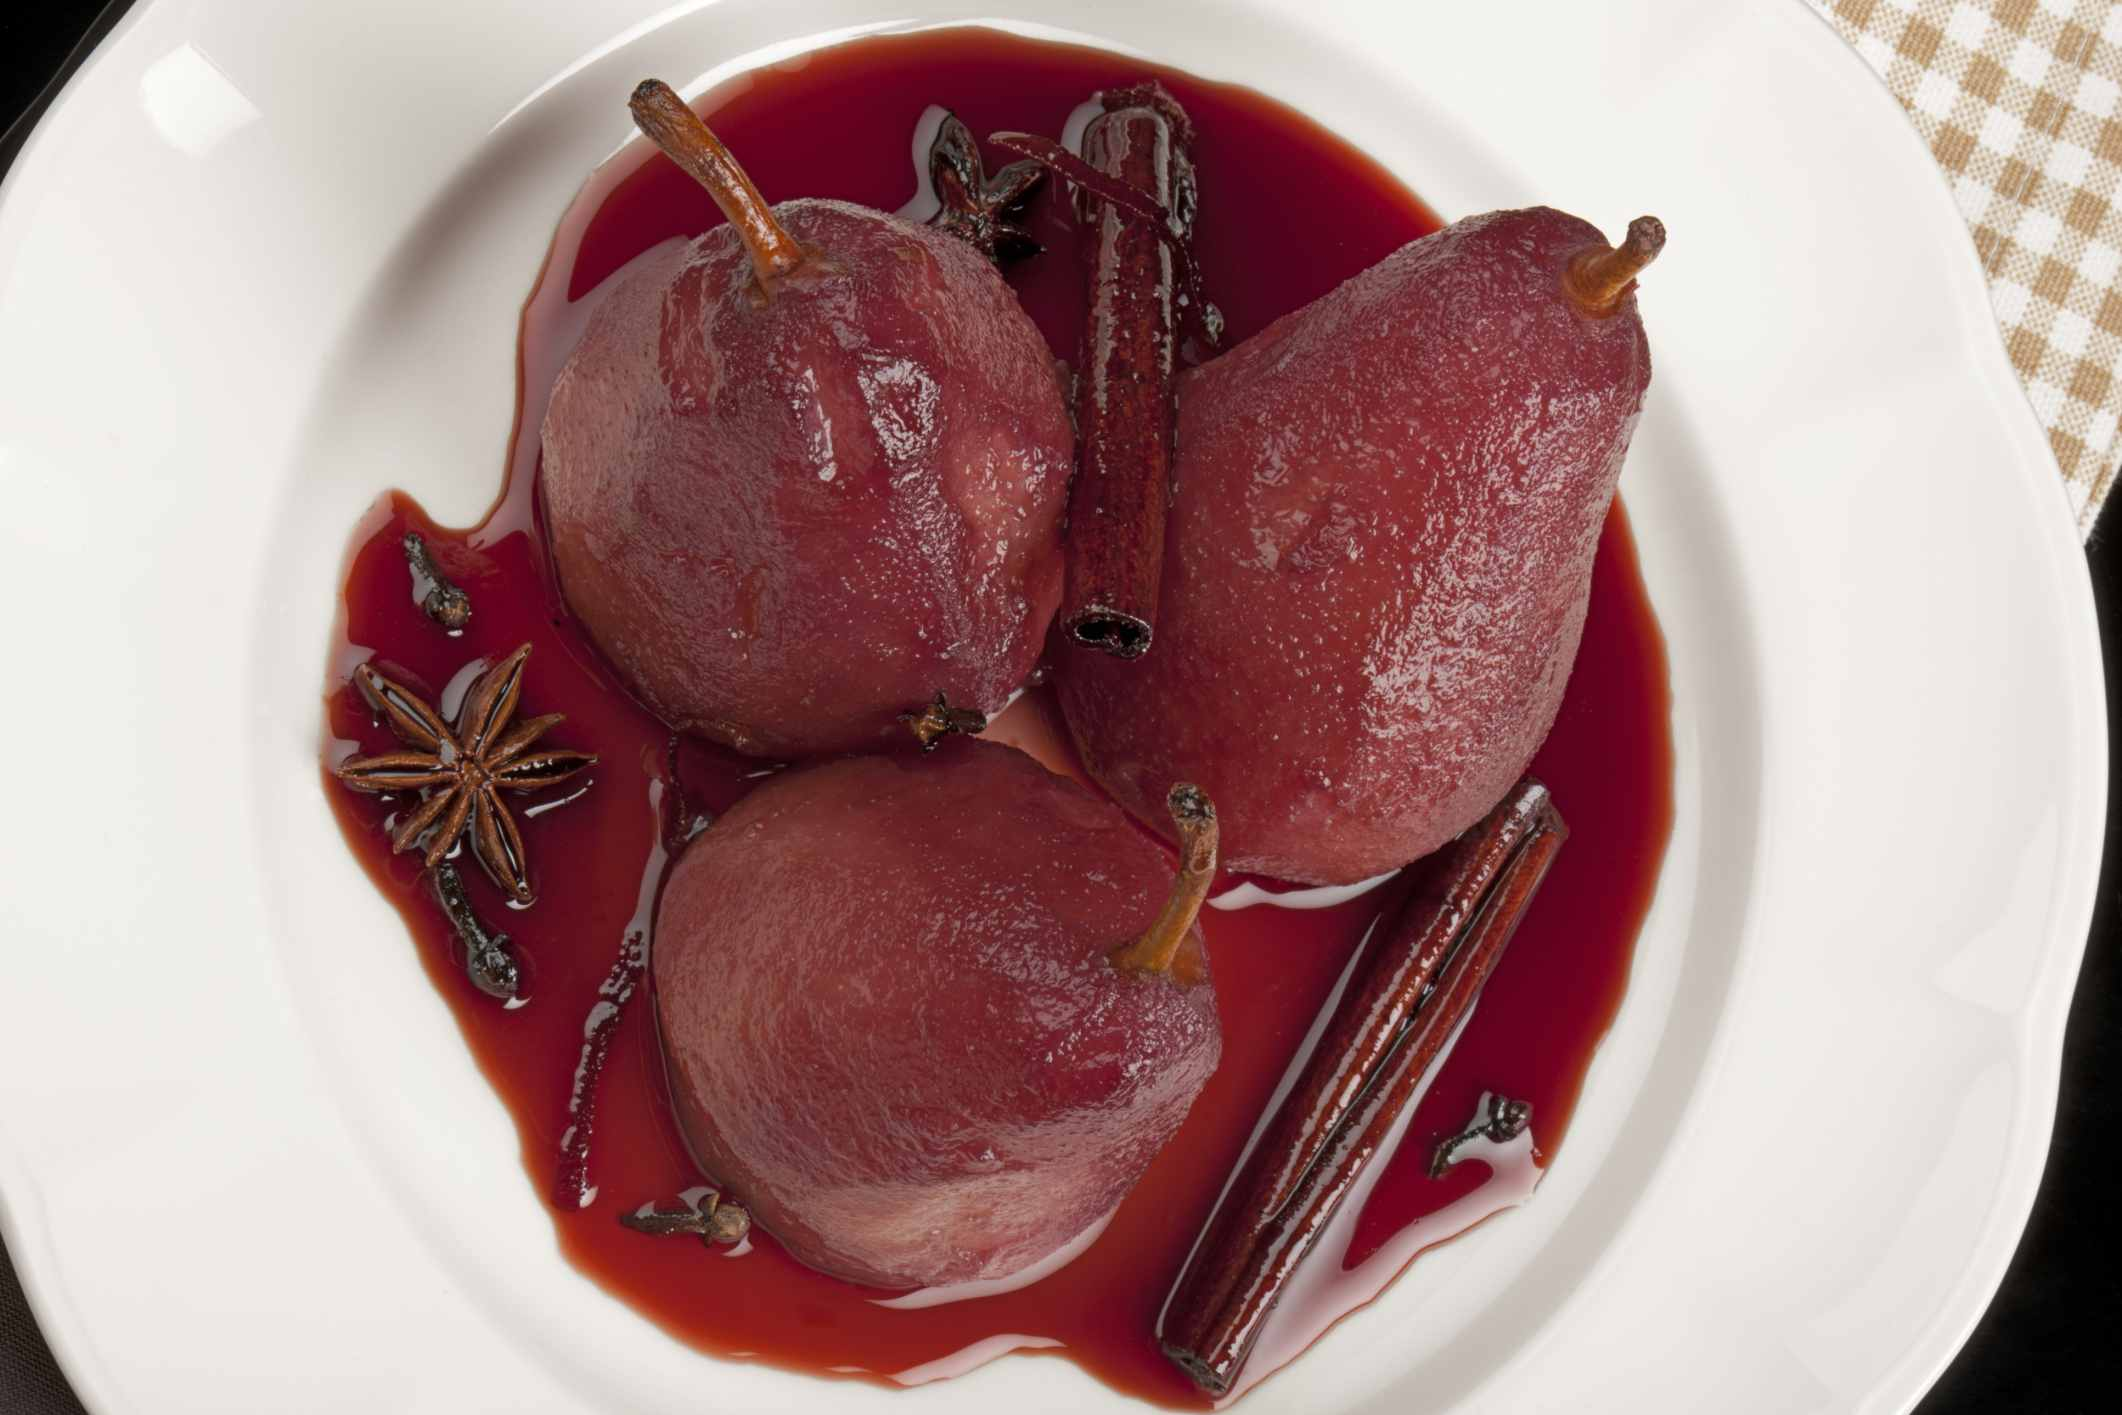 Poached pears are healthy holiday foods.